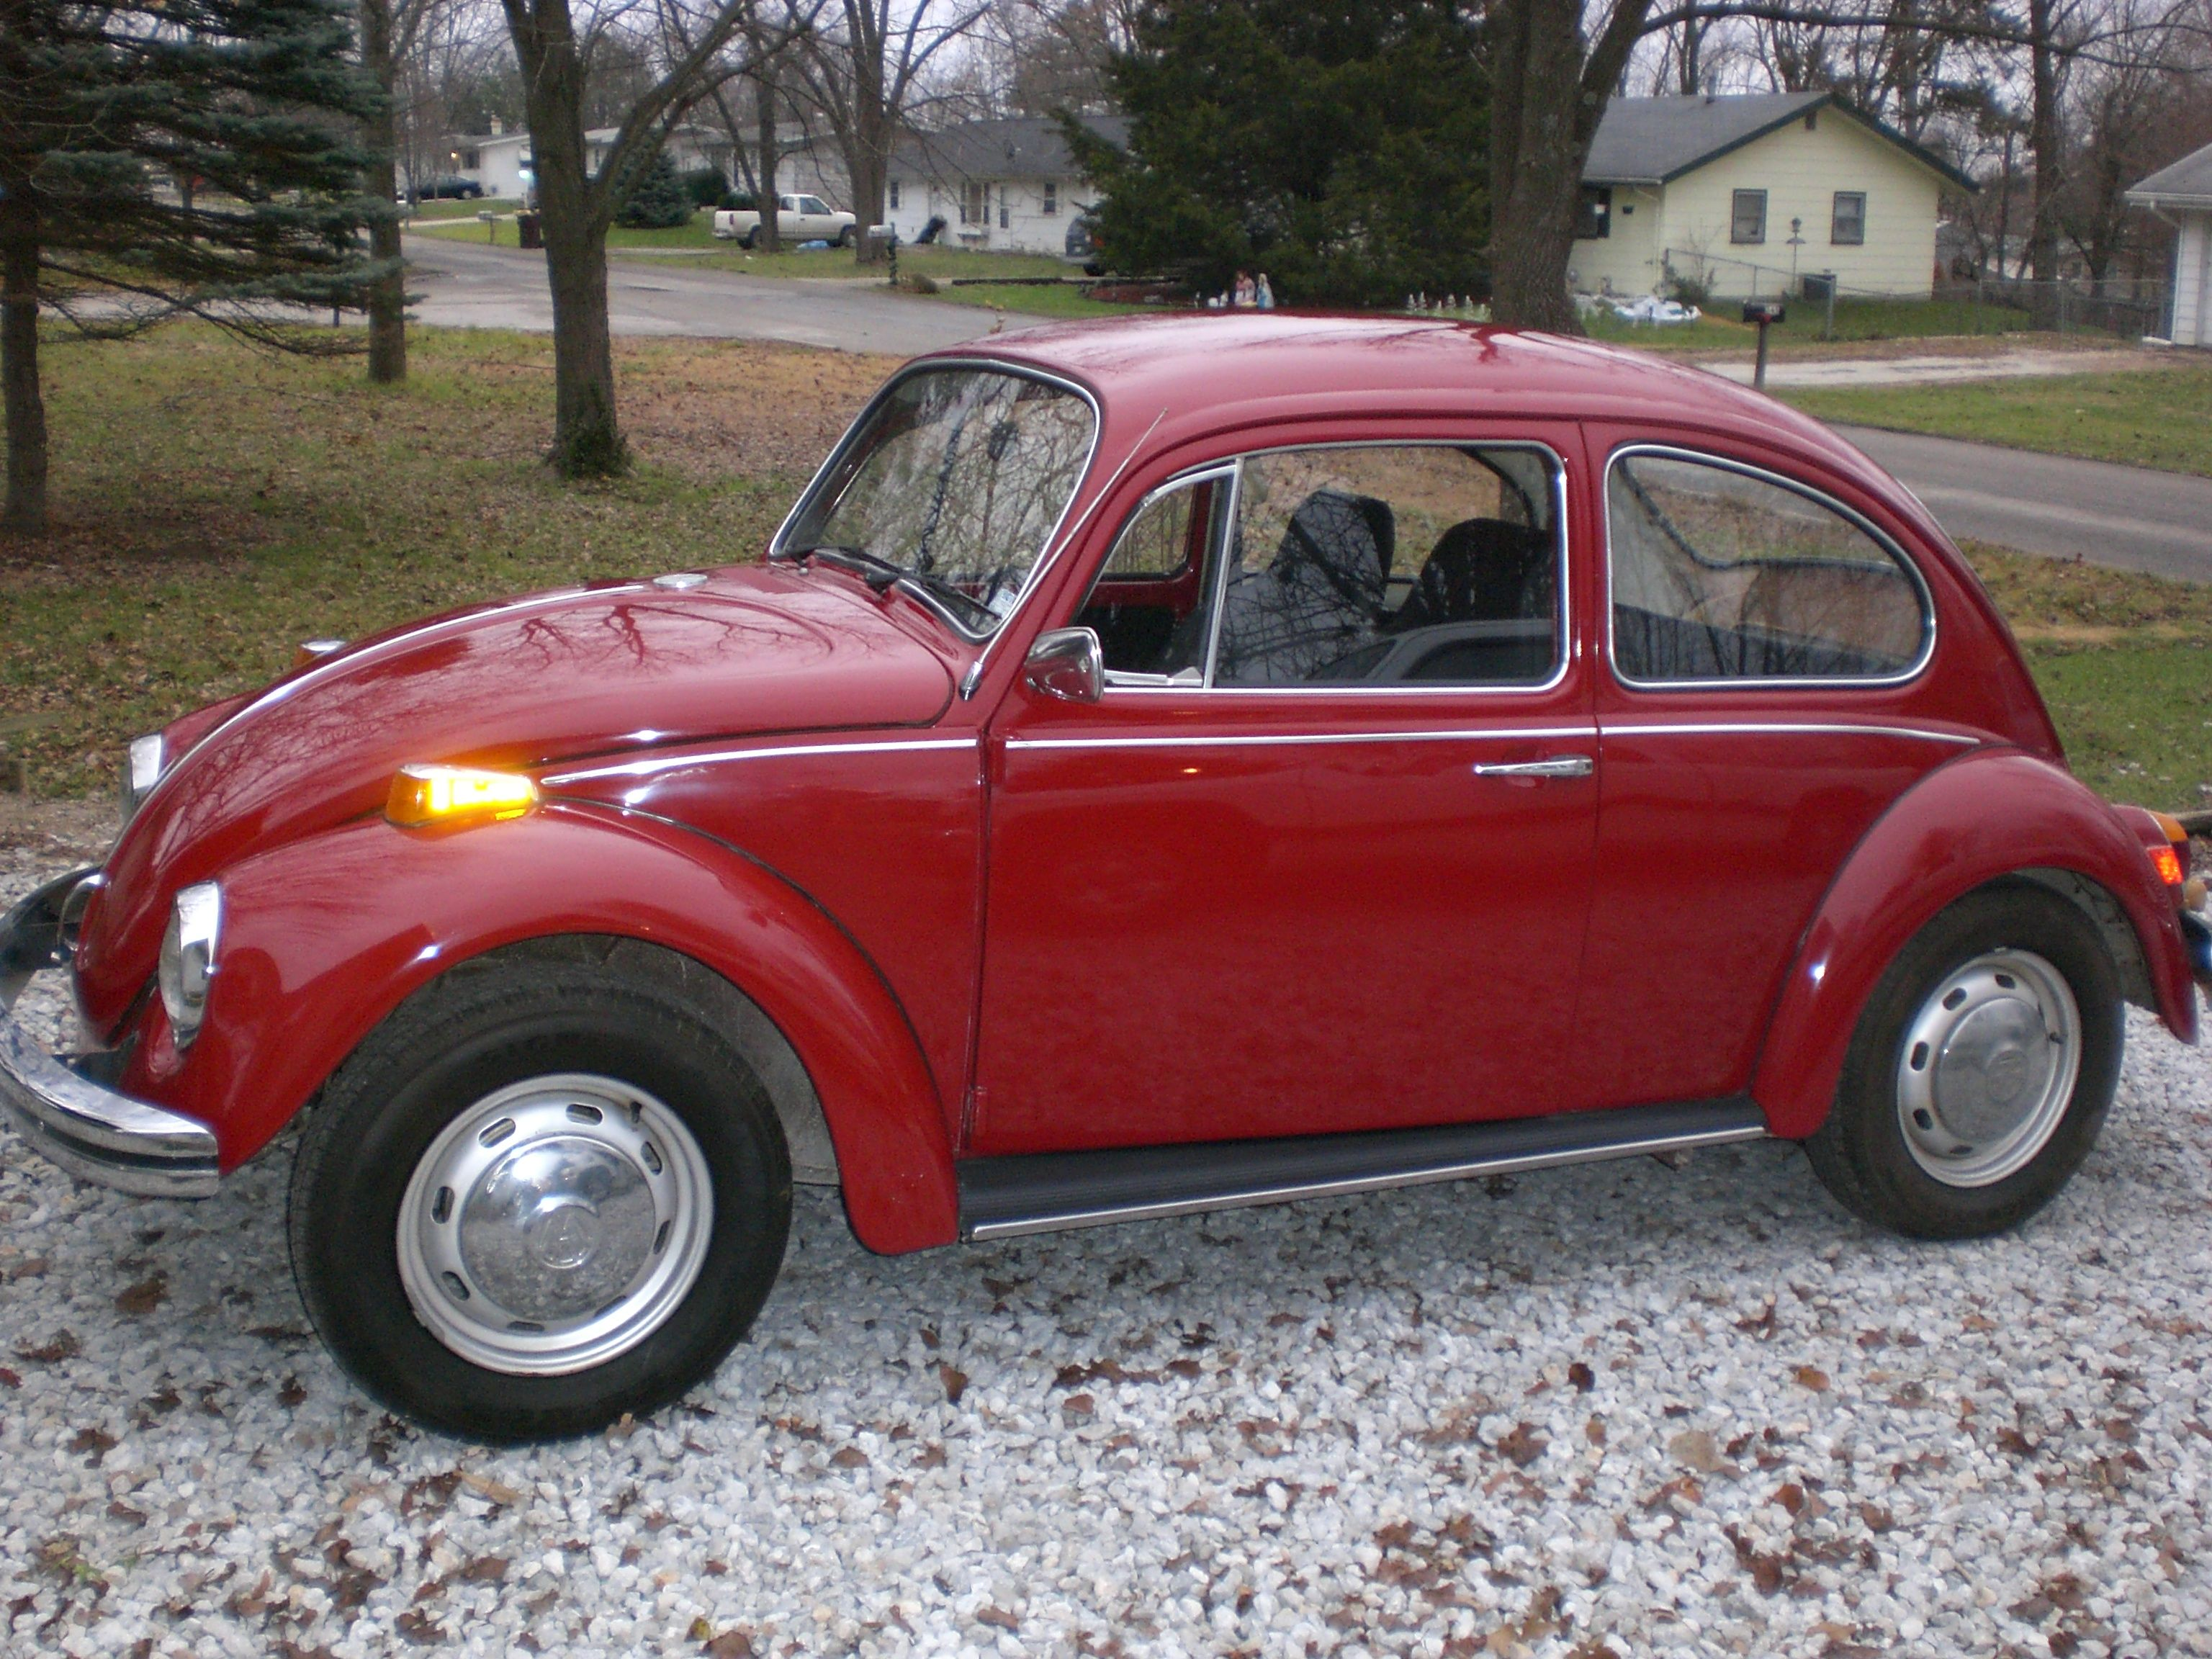 1970 red volkswagen beetle this was our family car no seat belts